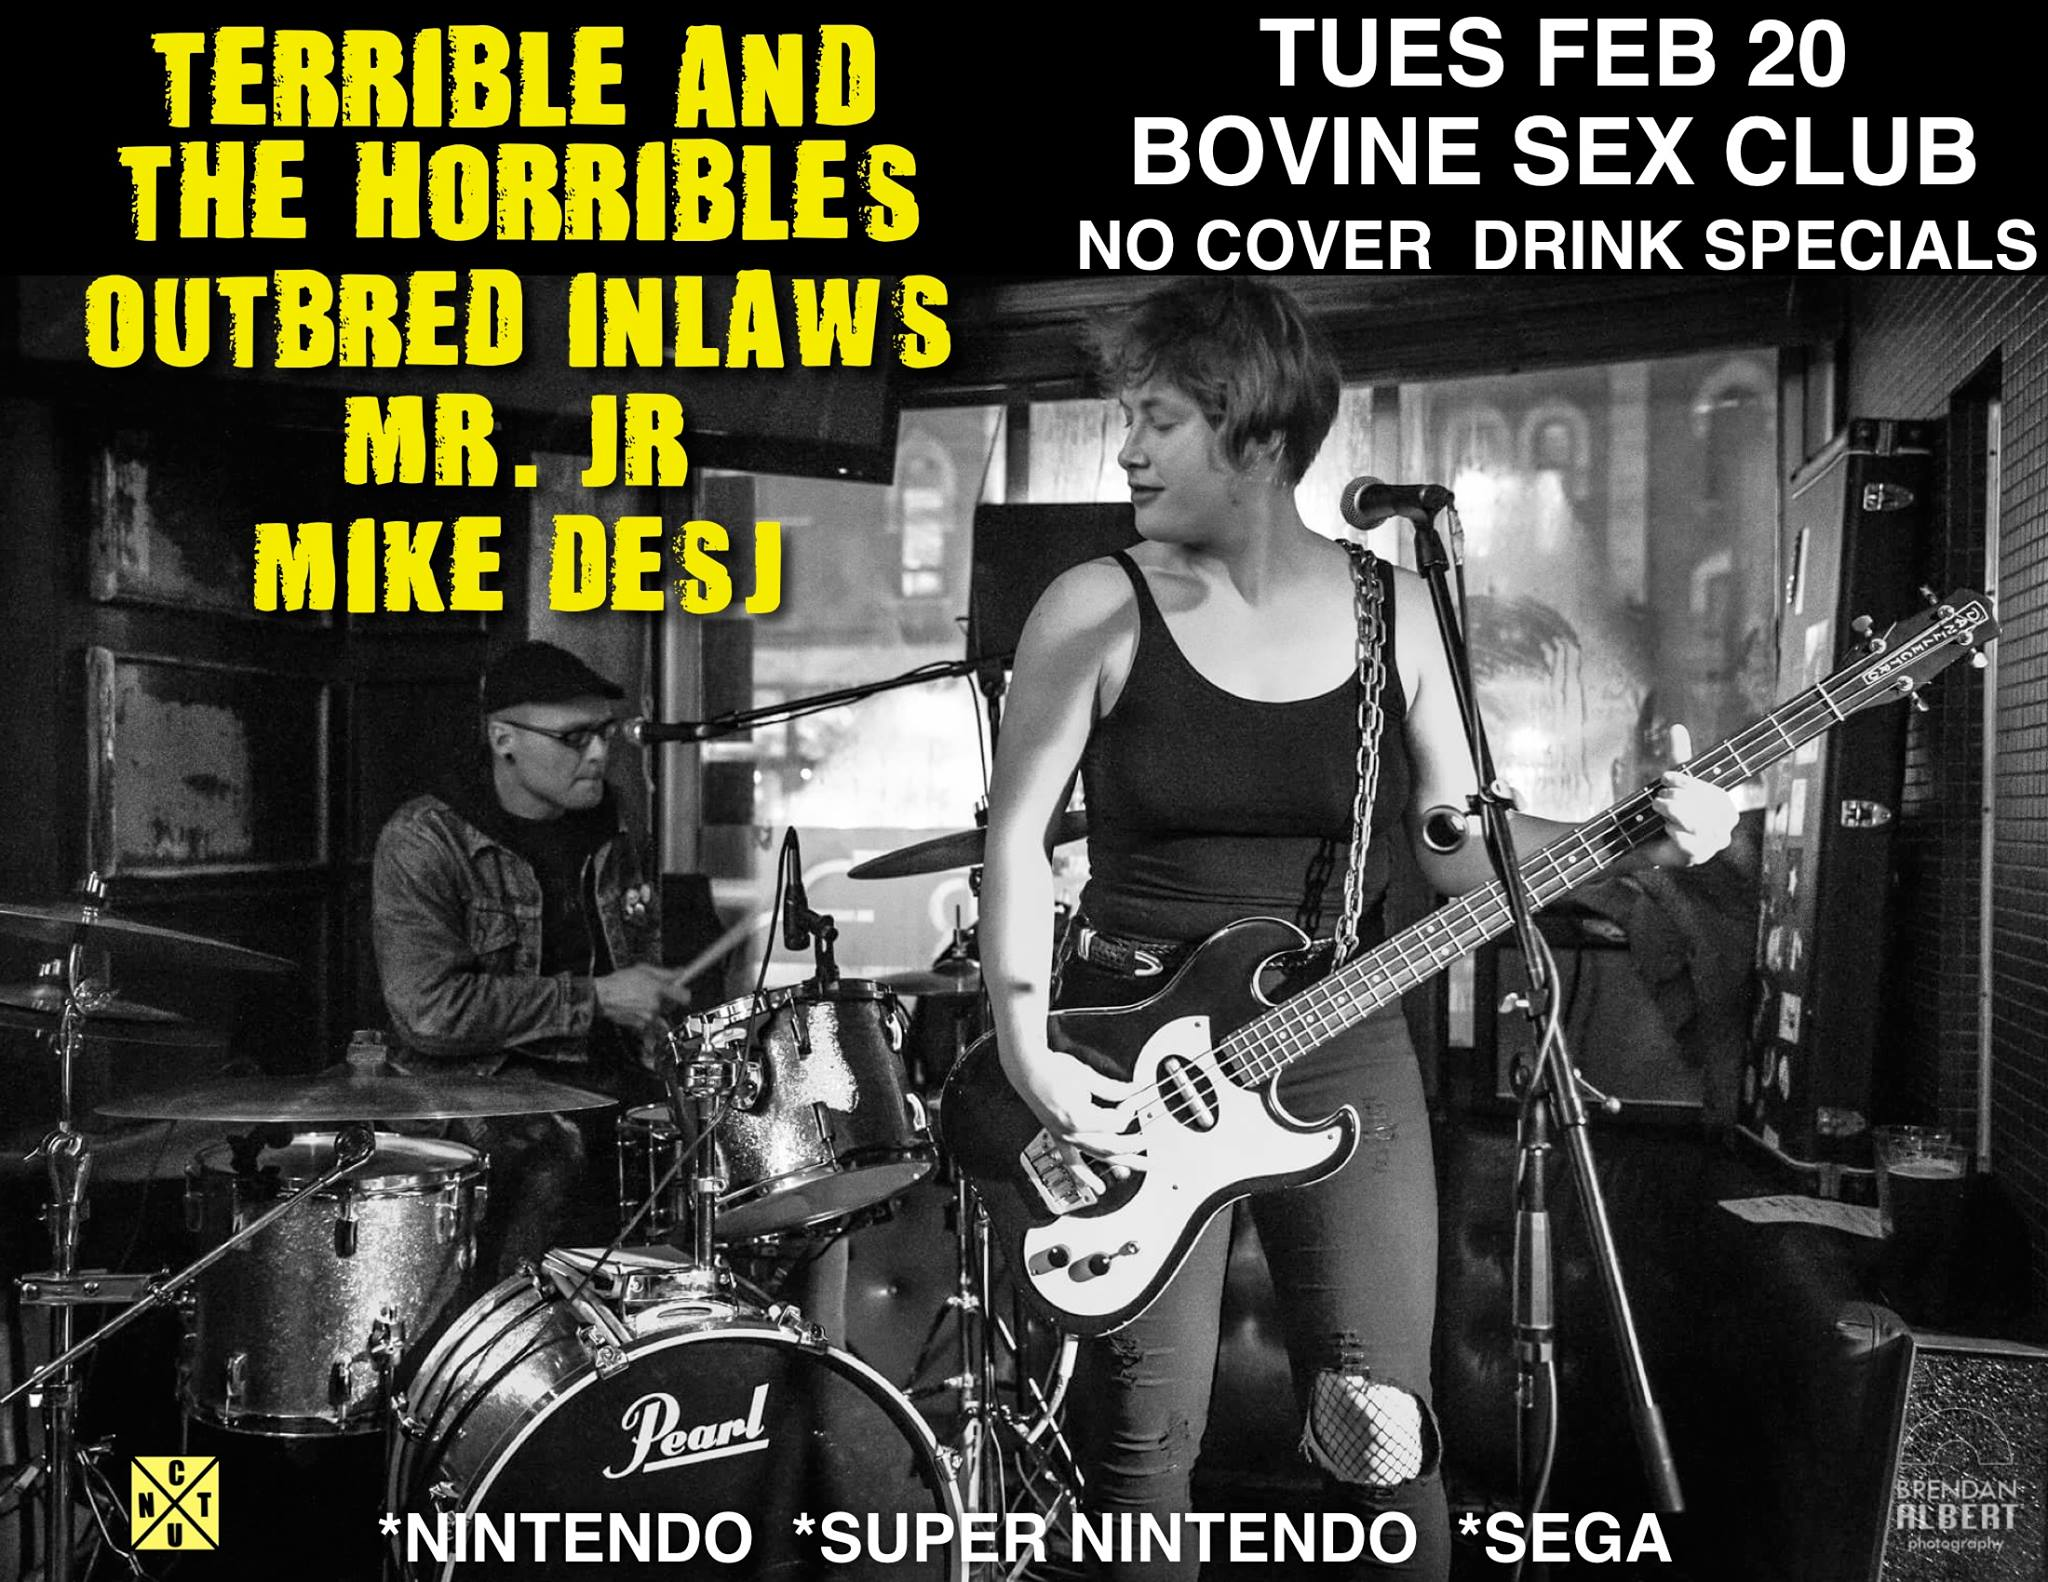 Terrible & the Horribles, Outbred Inlaws, Mr. Jr. Mike Desj